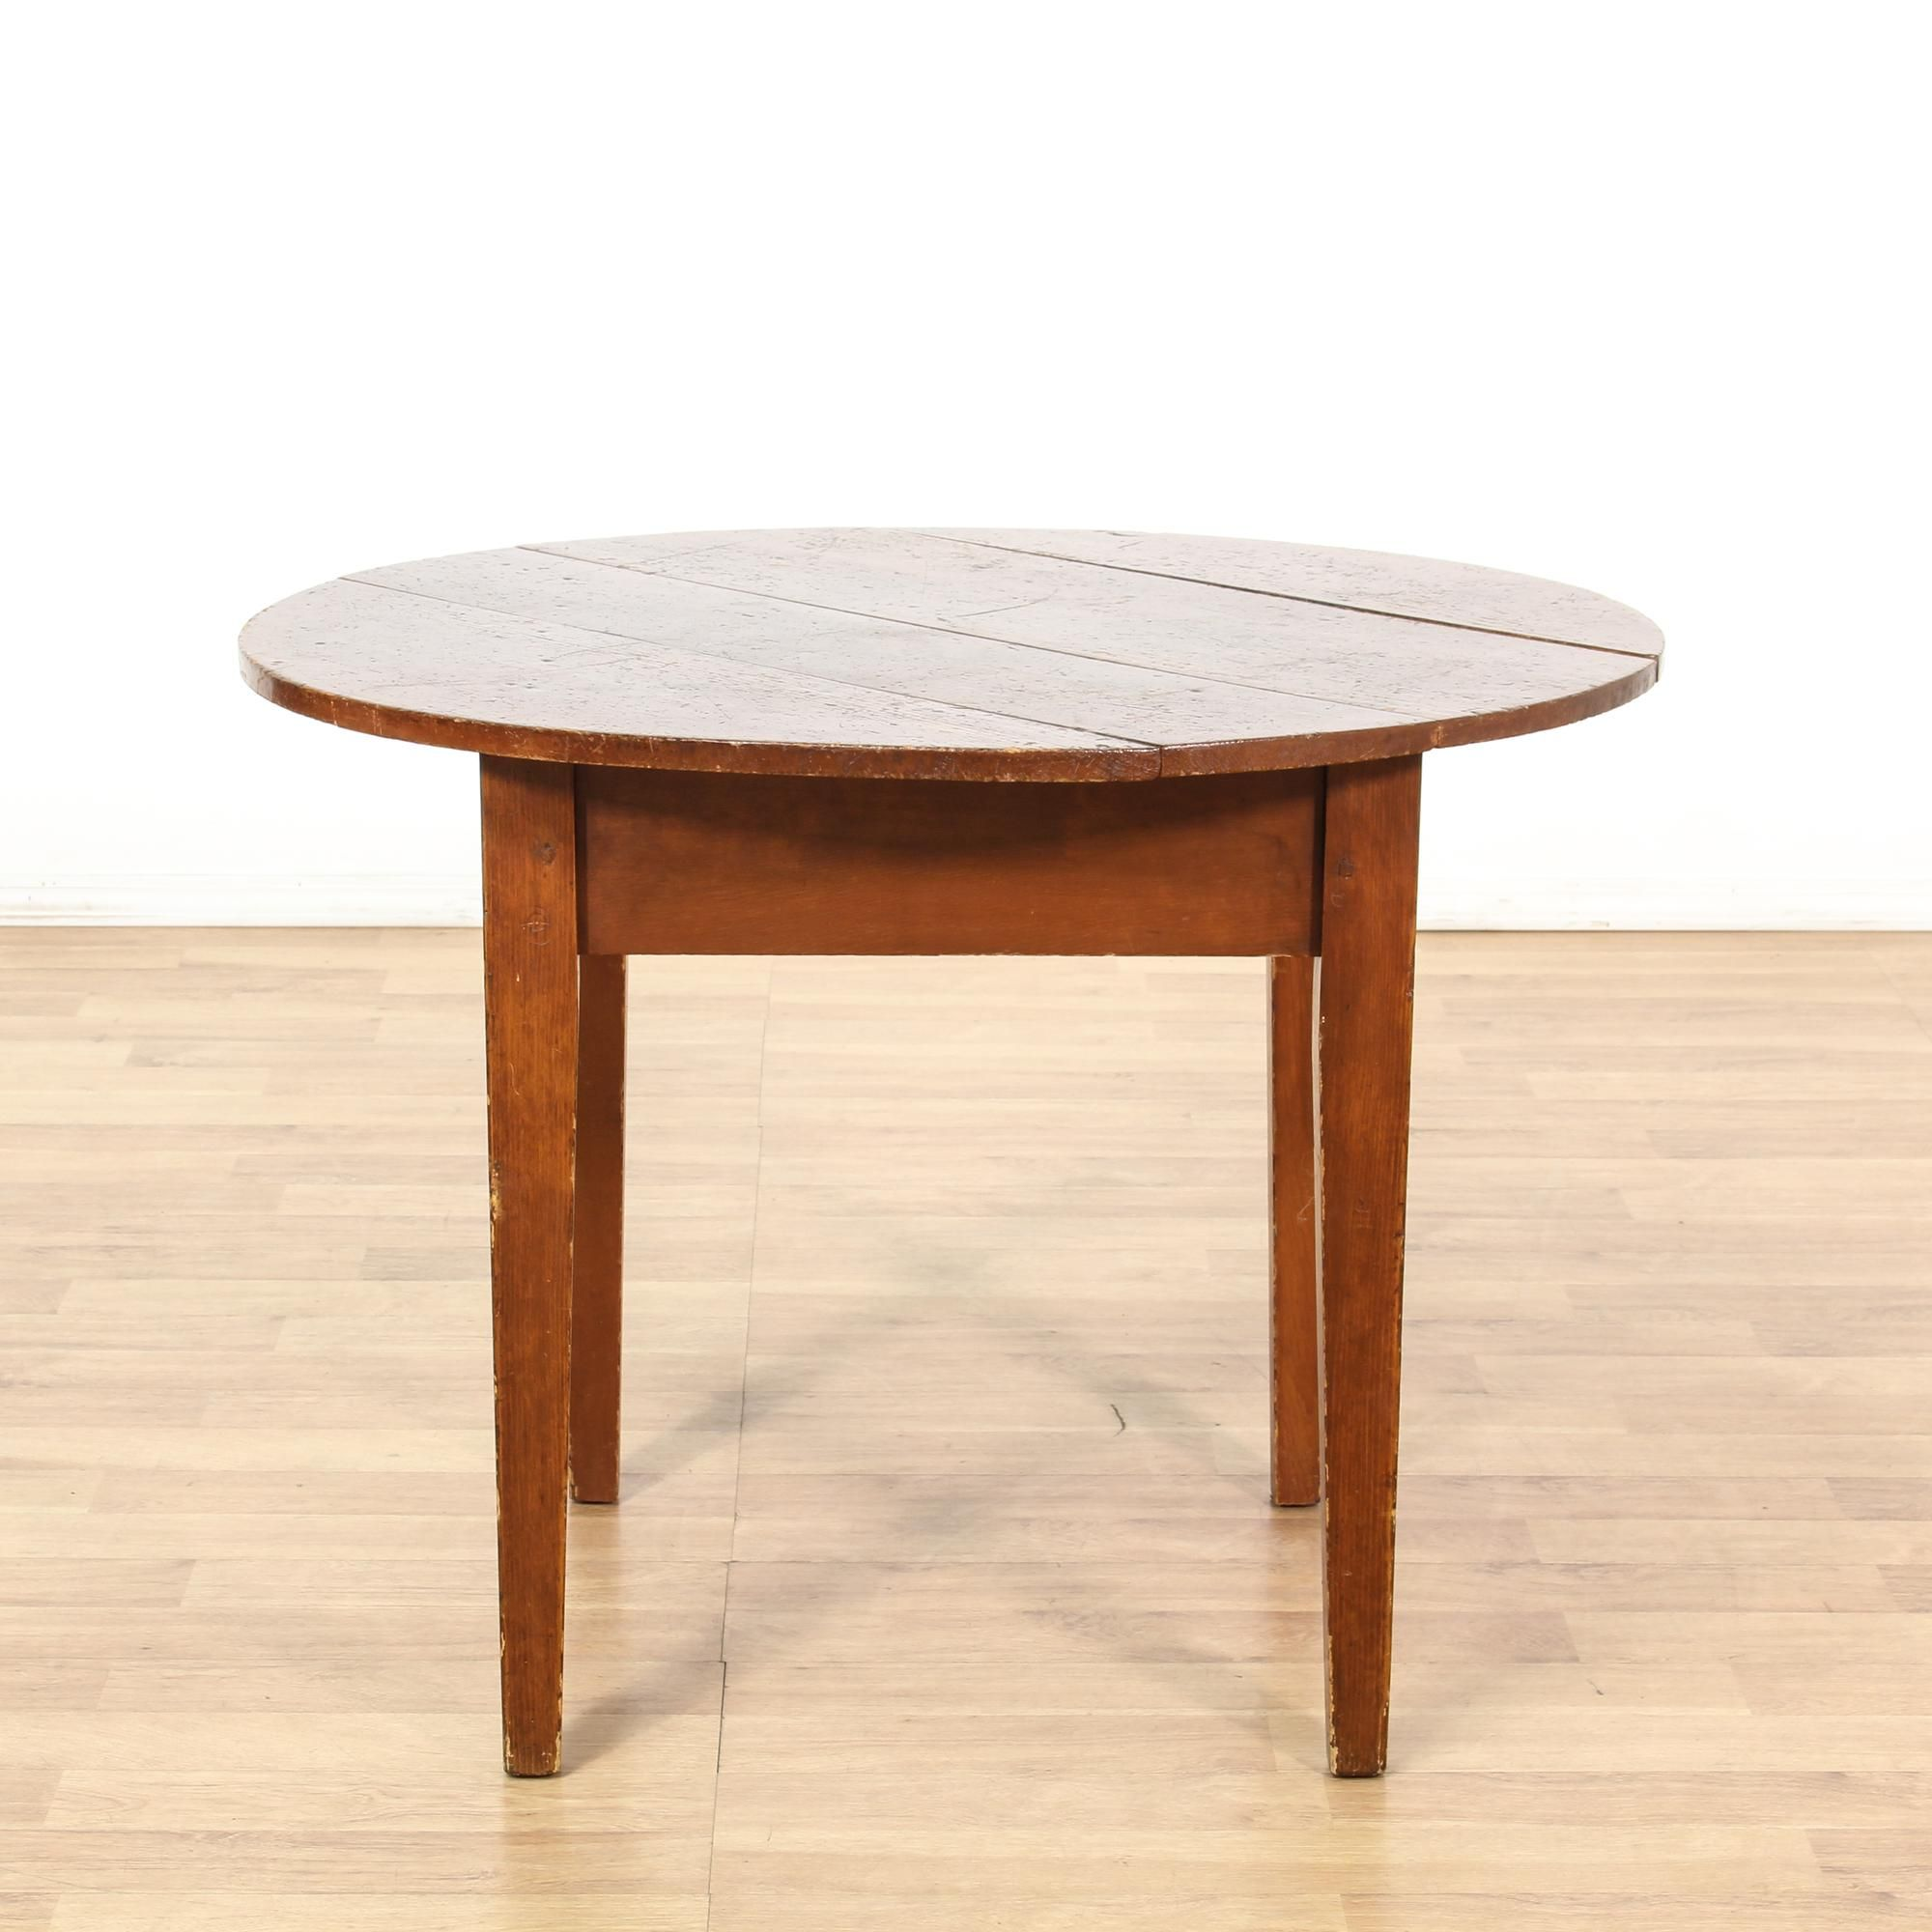 This round breakfast dining table is featured in a solid wood with